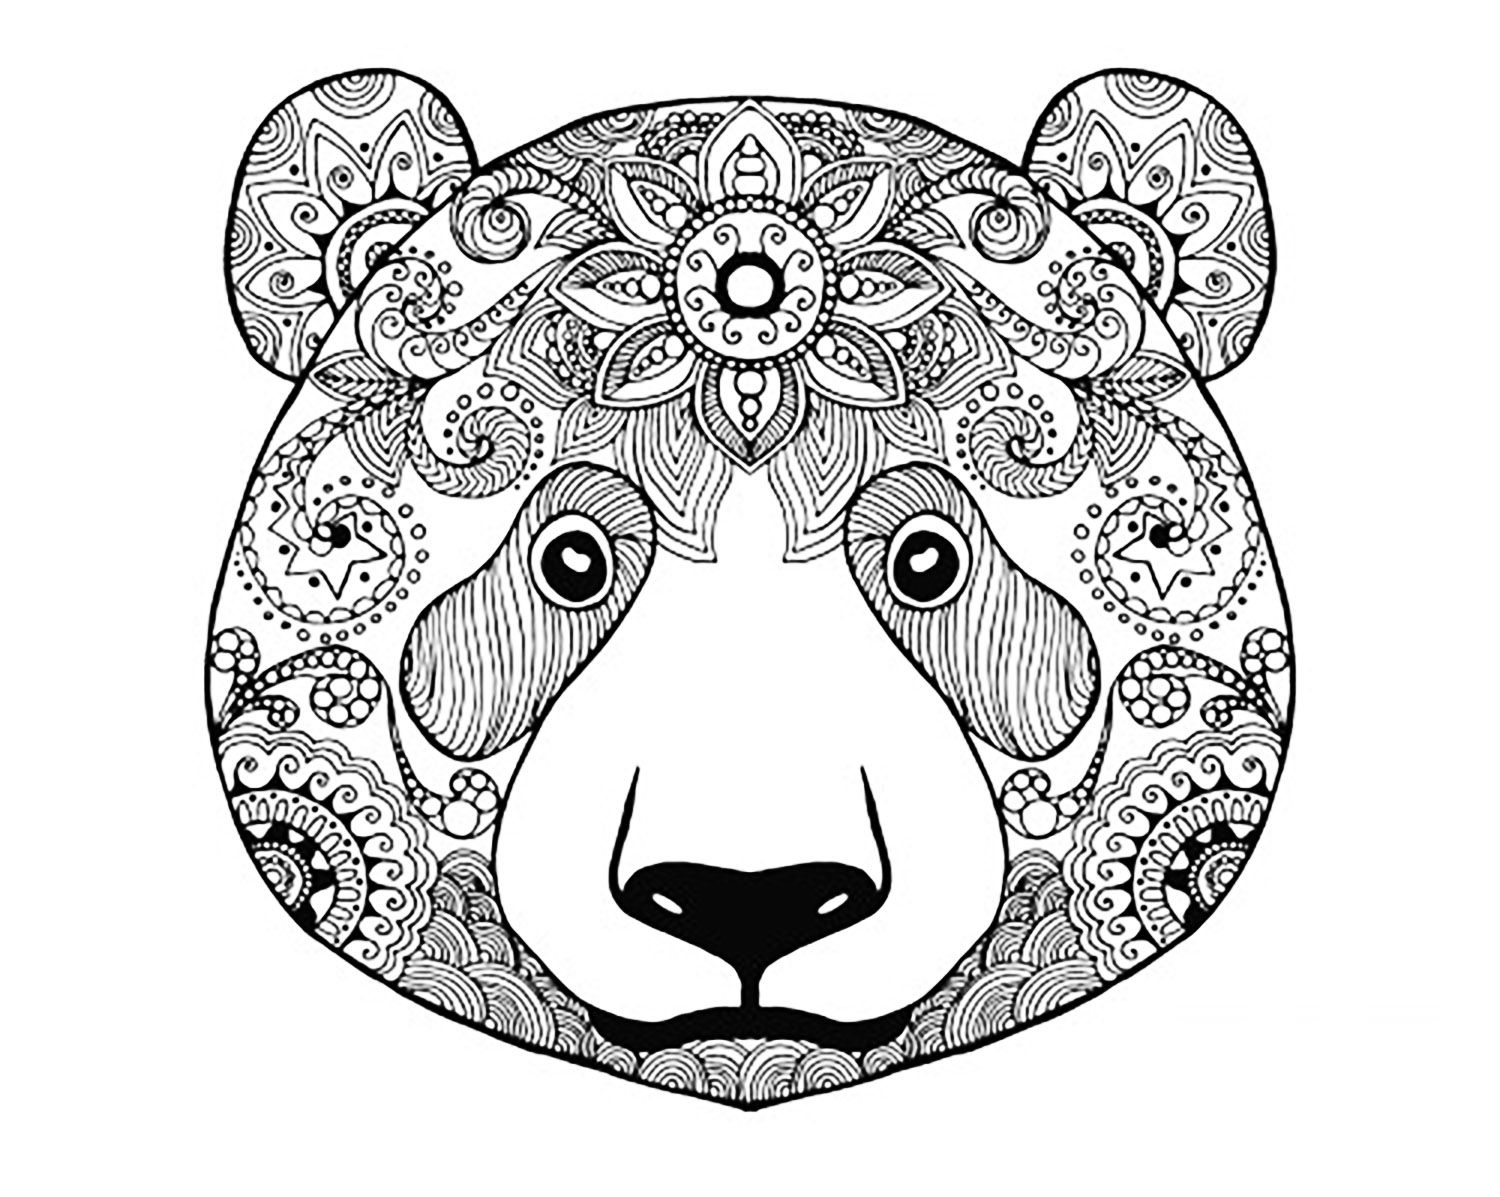 free mandala animals coloring pages | Bear head to print and colorFrom the gallery : Animals ...